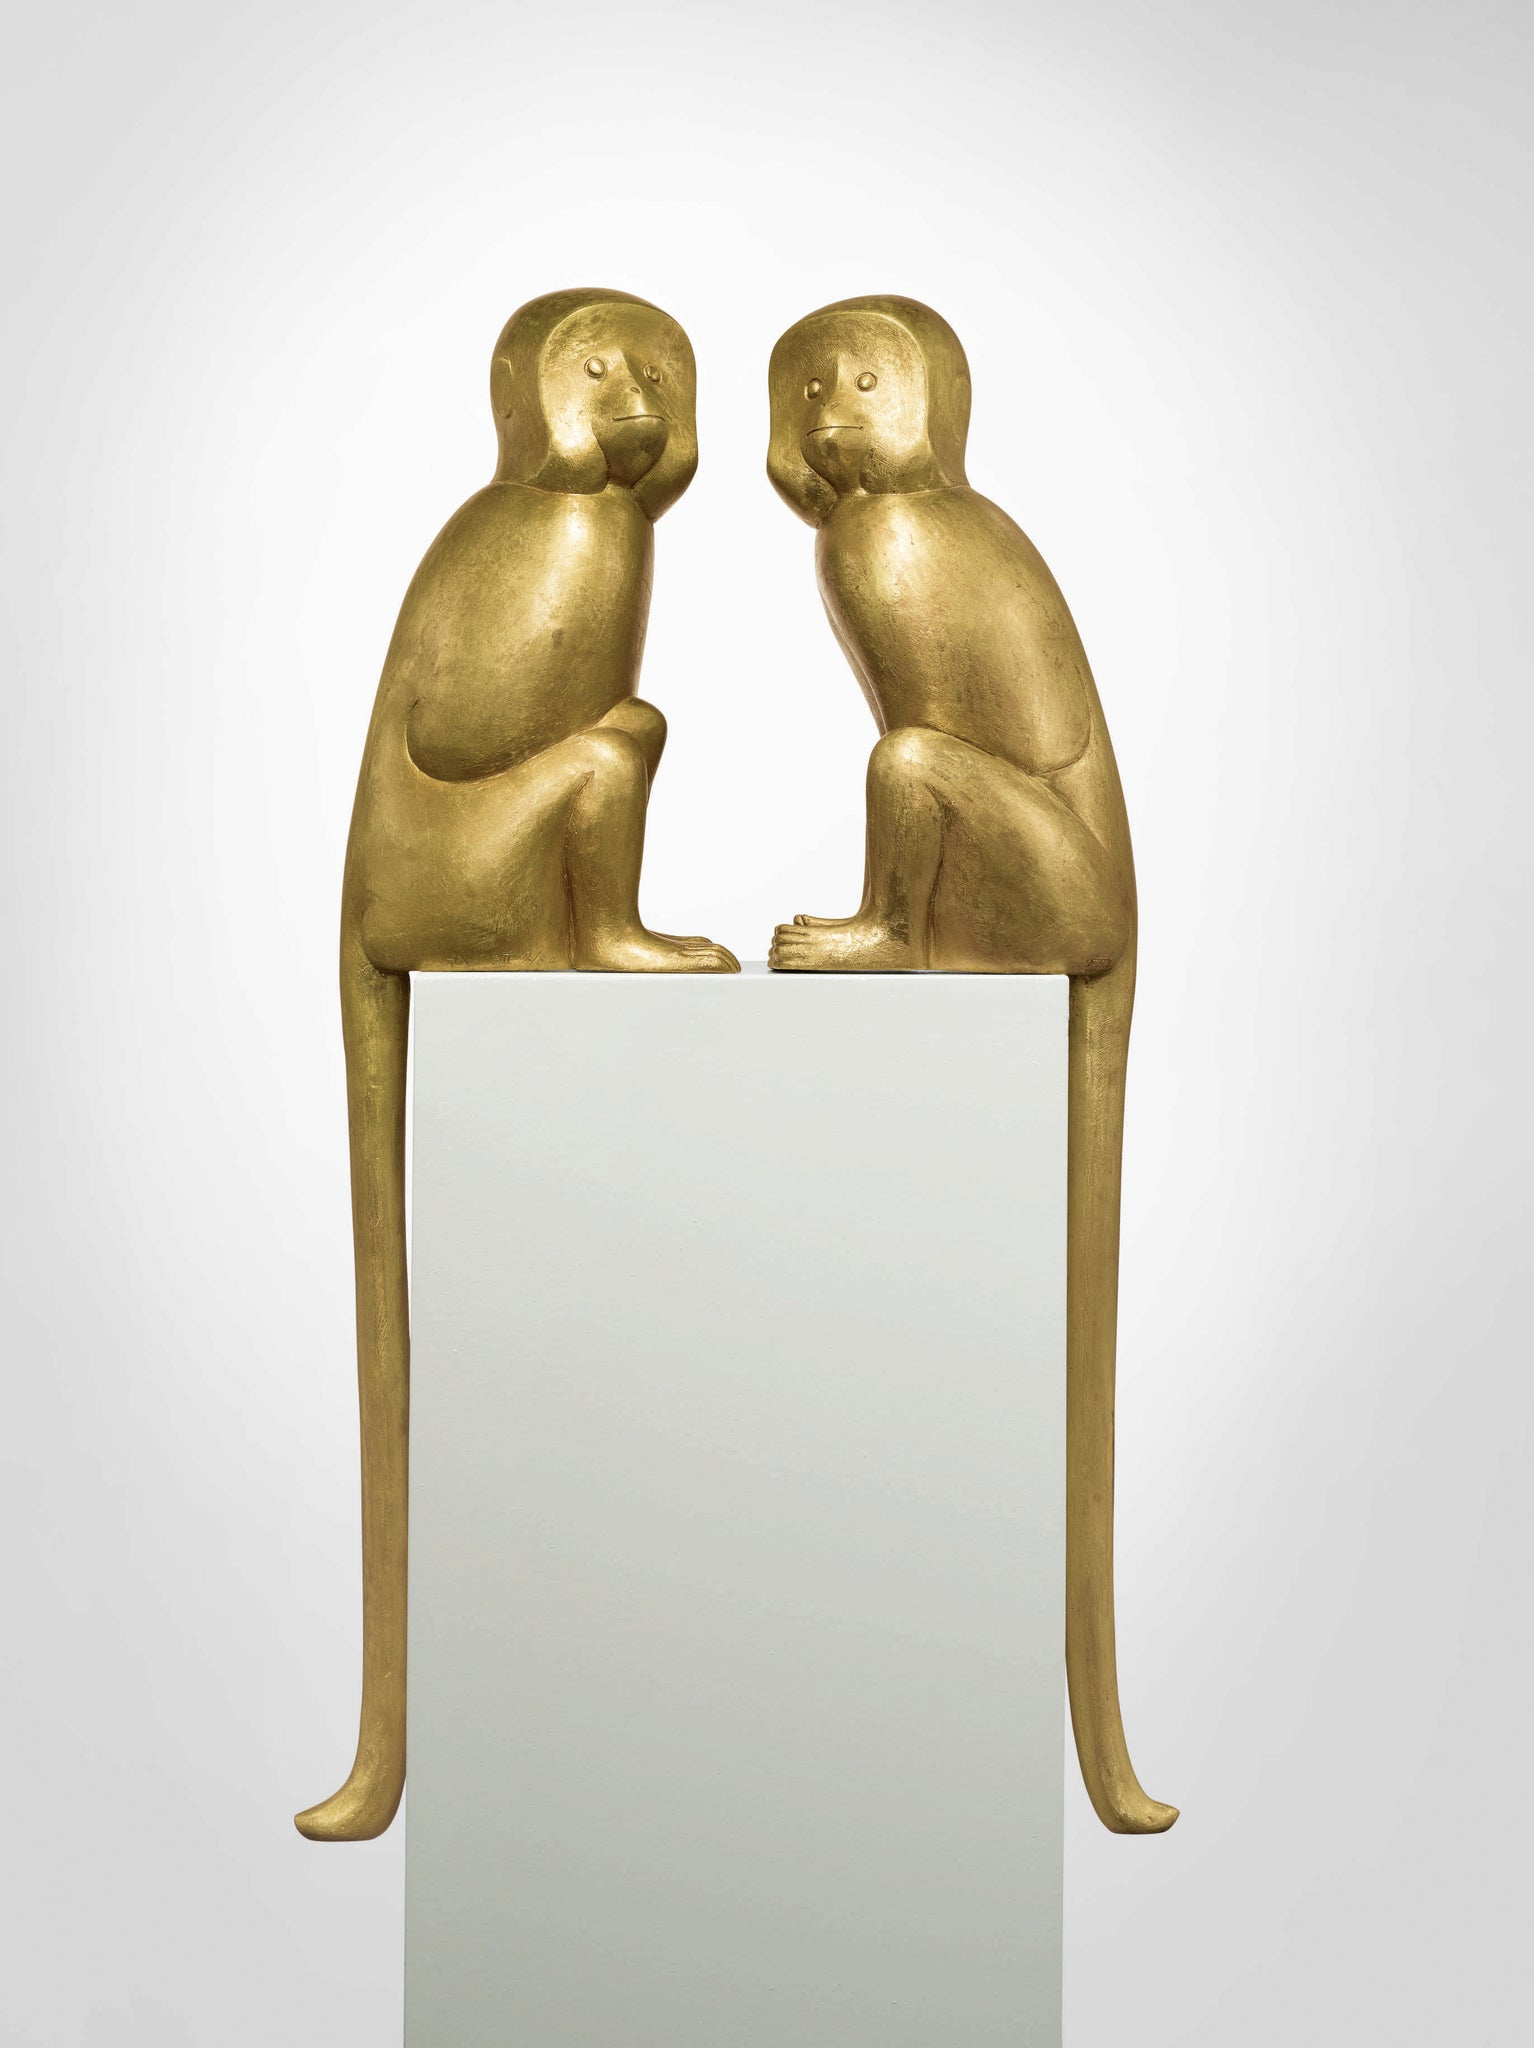 Singe I and Singe II (1999) by Francois-Xavier Lalanne sold at Sotheby's New York in July for $3,500,000 and $3,980,000 respectively. Photo © Sotheby's